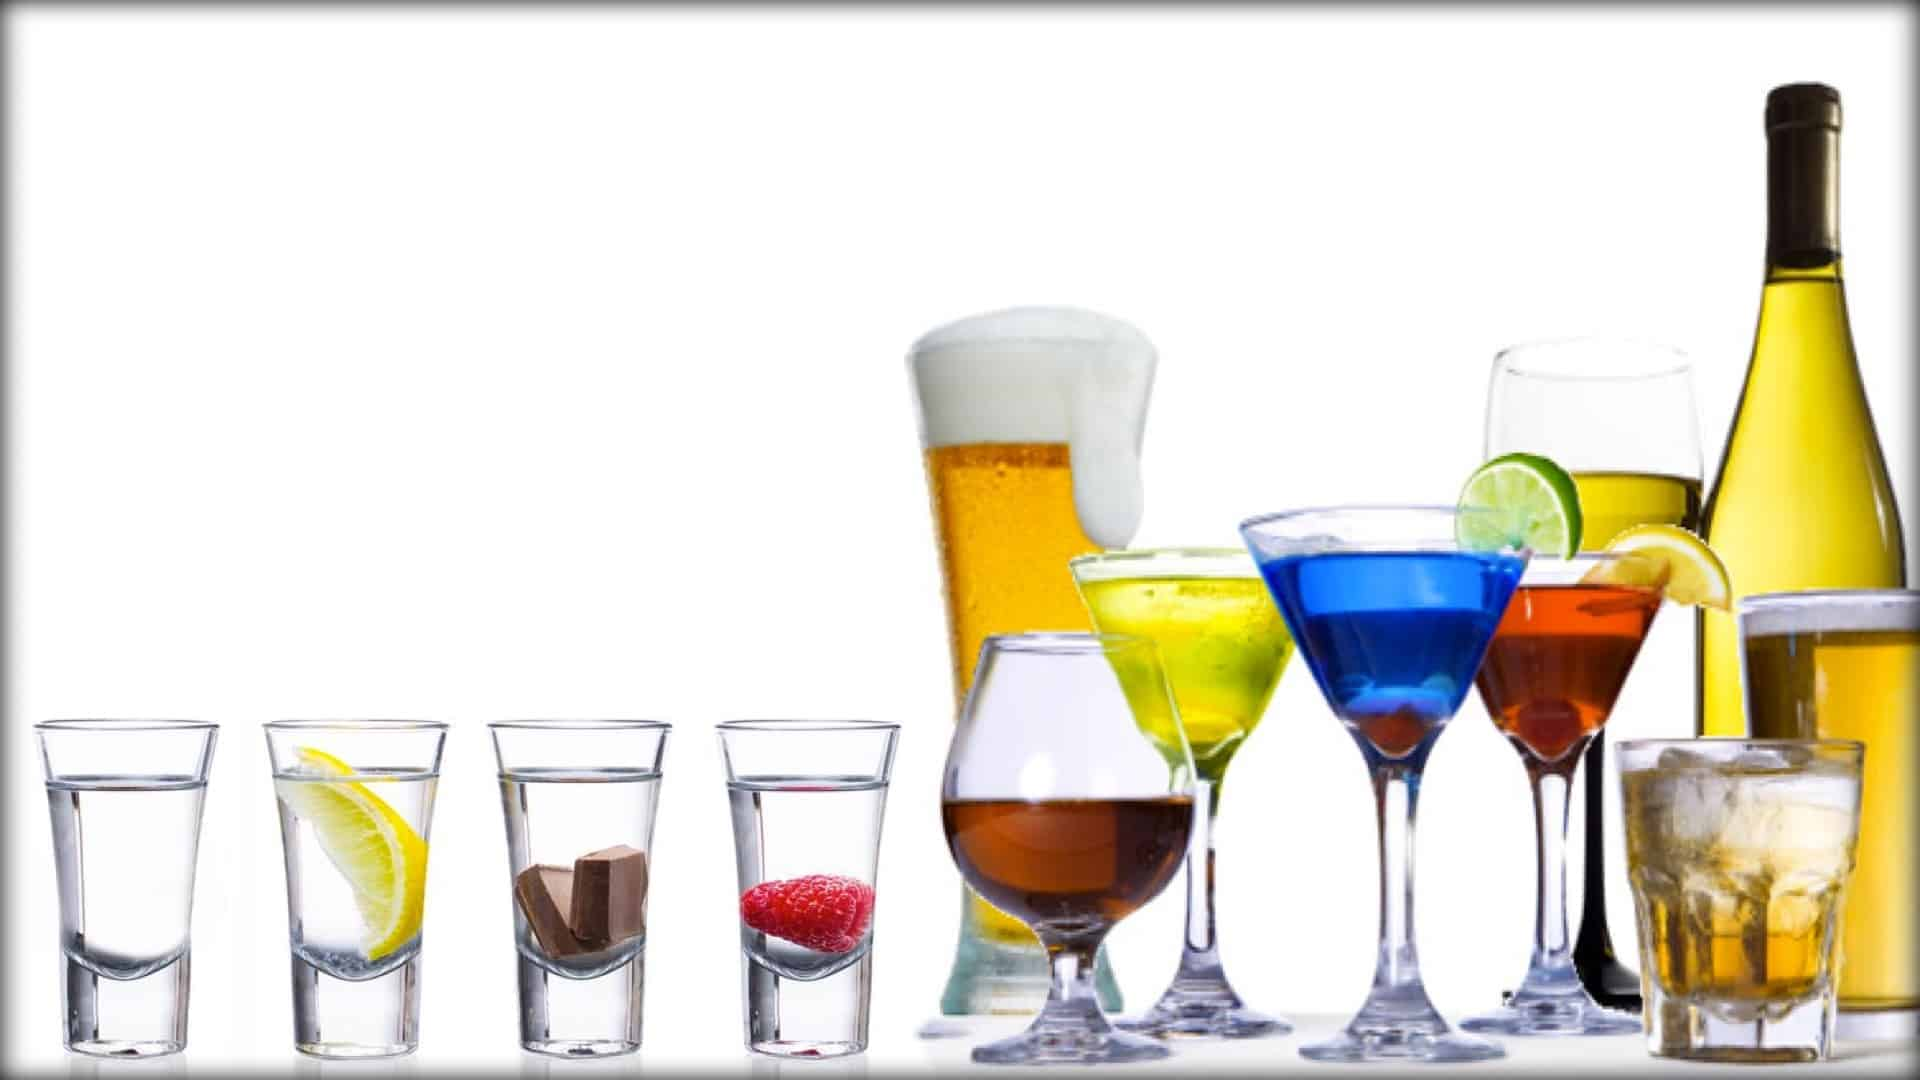 A range of different and colorful alcoholic beverages are displayed in a line.